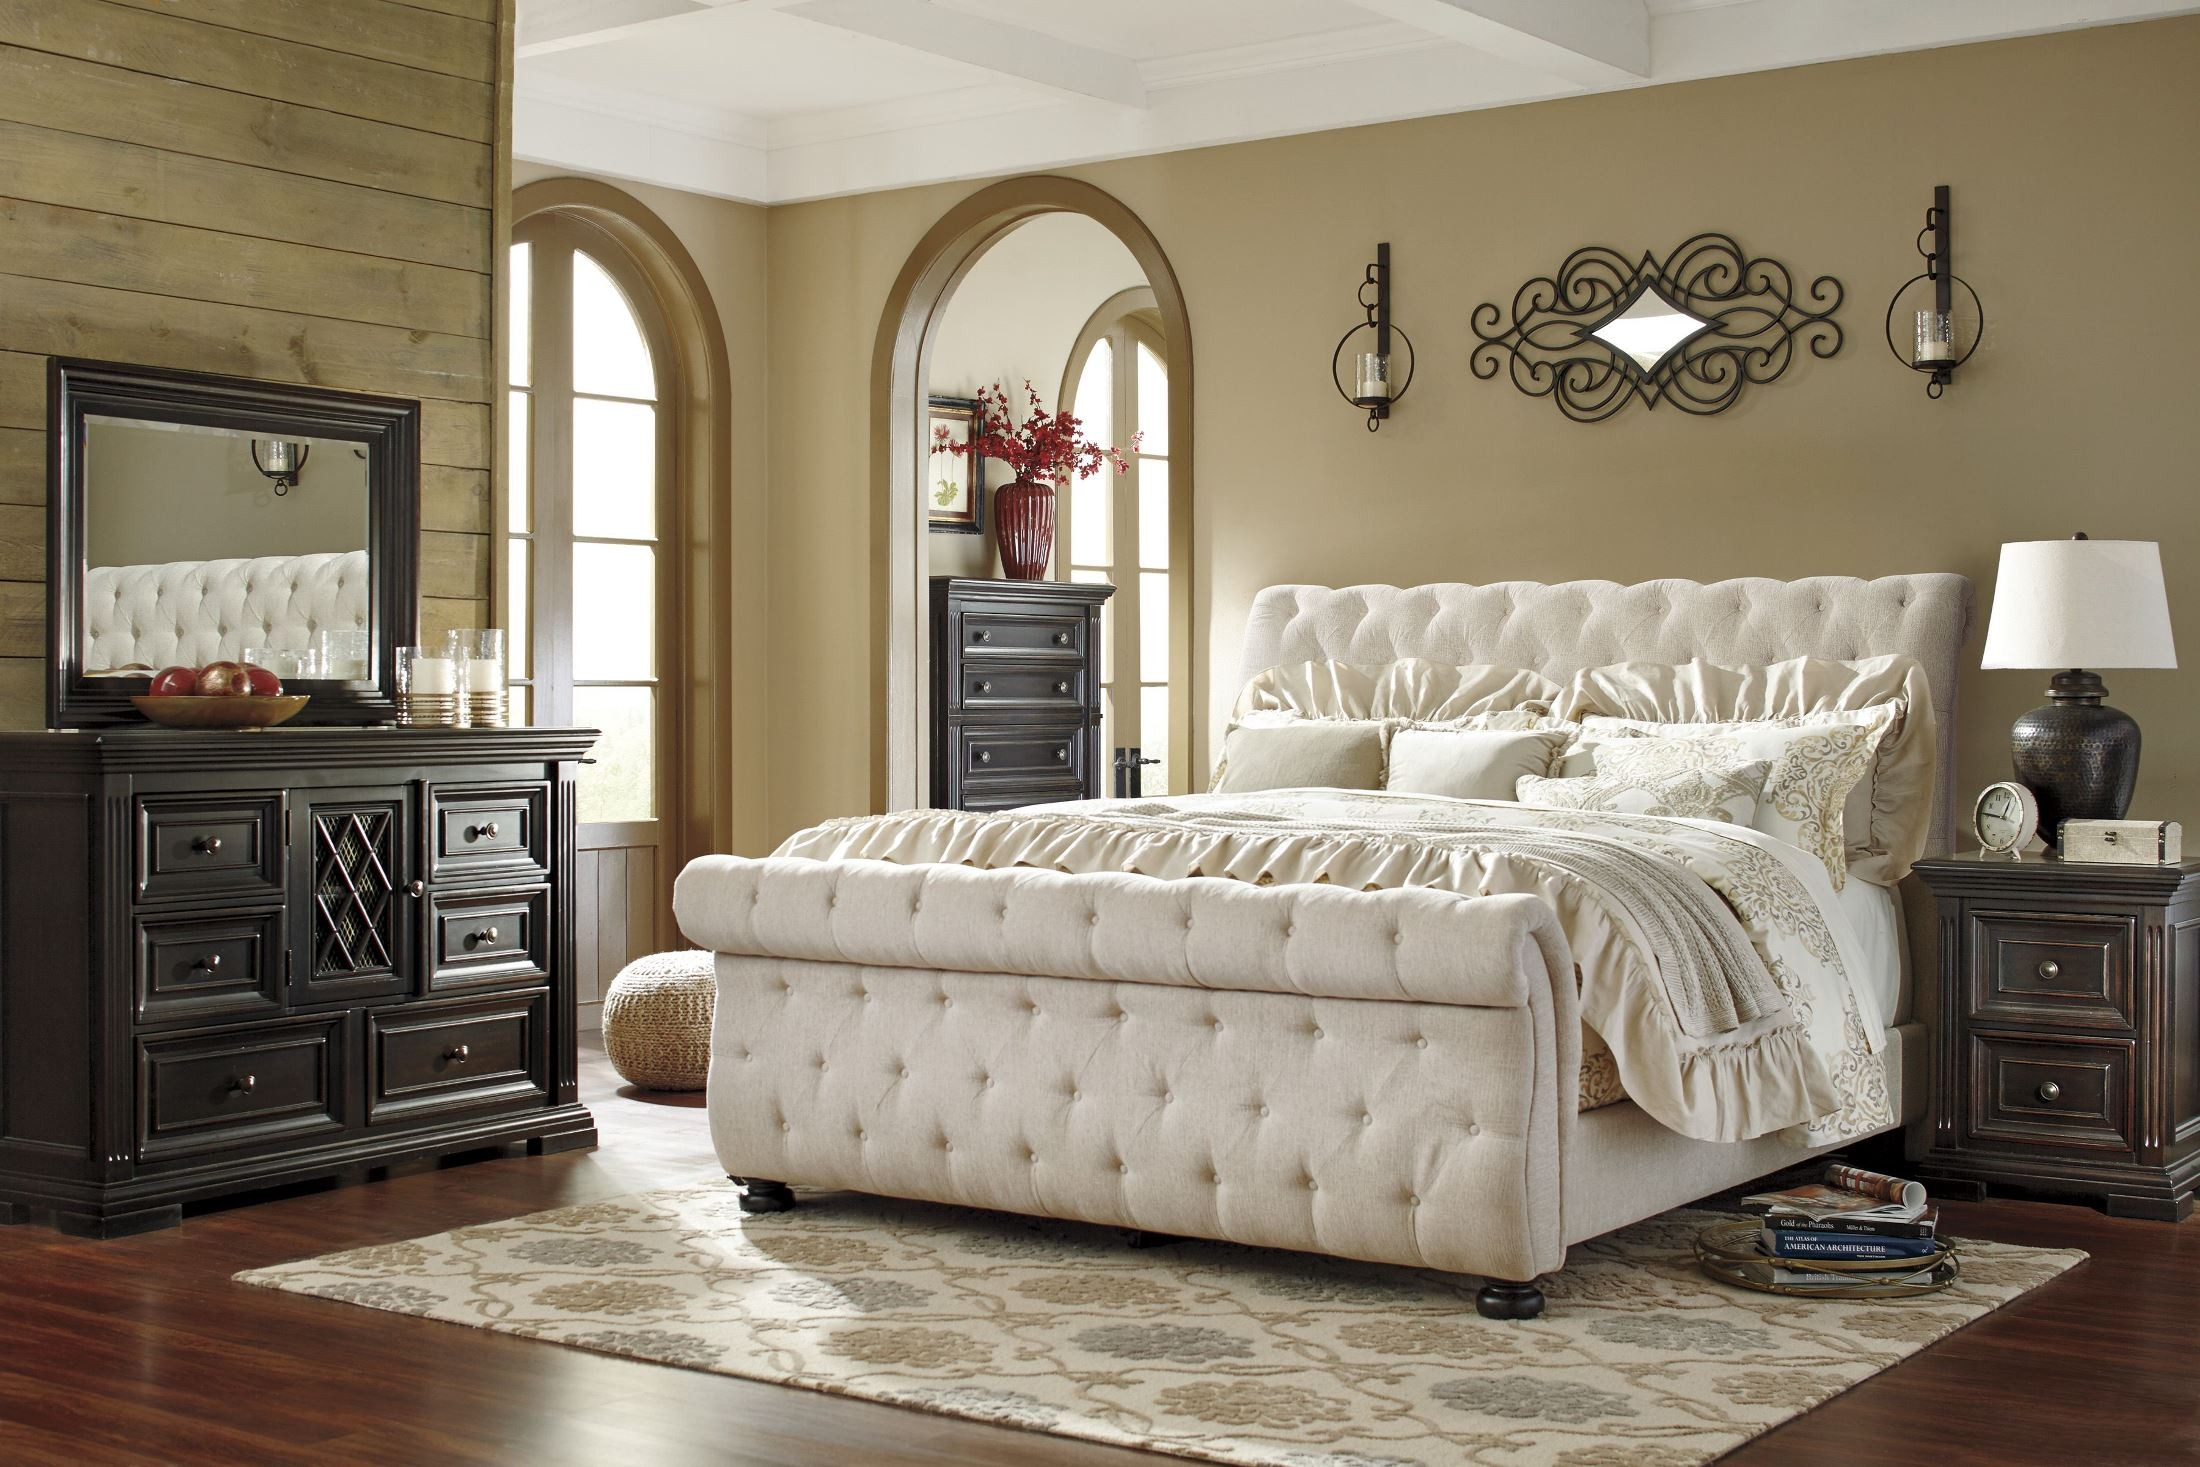 and raymour bed queen your kin platform ashley bedroom wooden furniture fabric home king with flanigan frame enrich storage decor sleigh tufted beds size